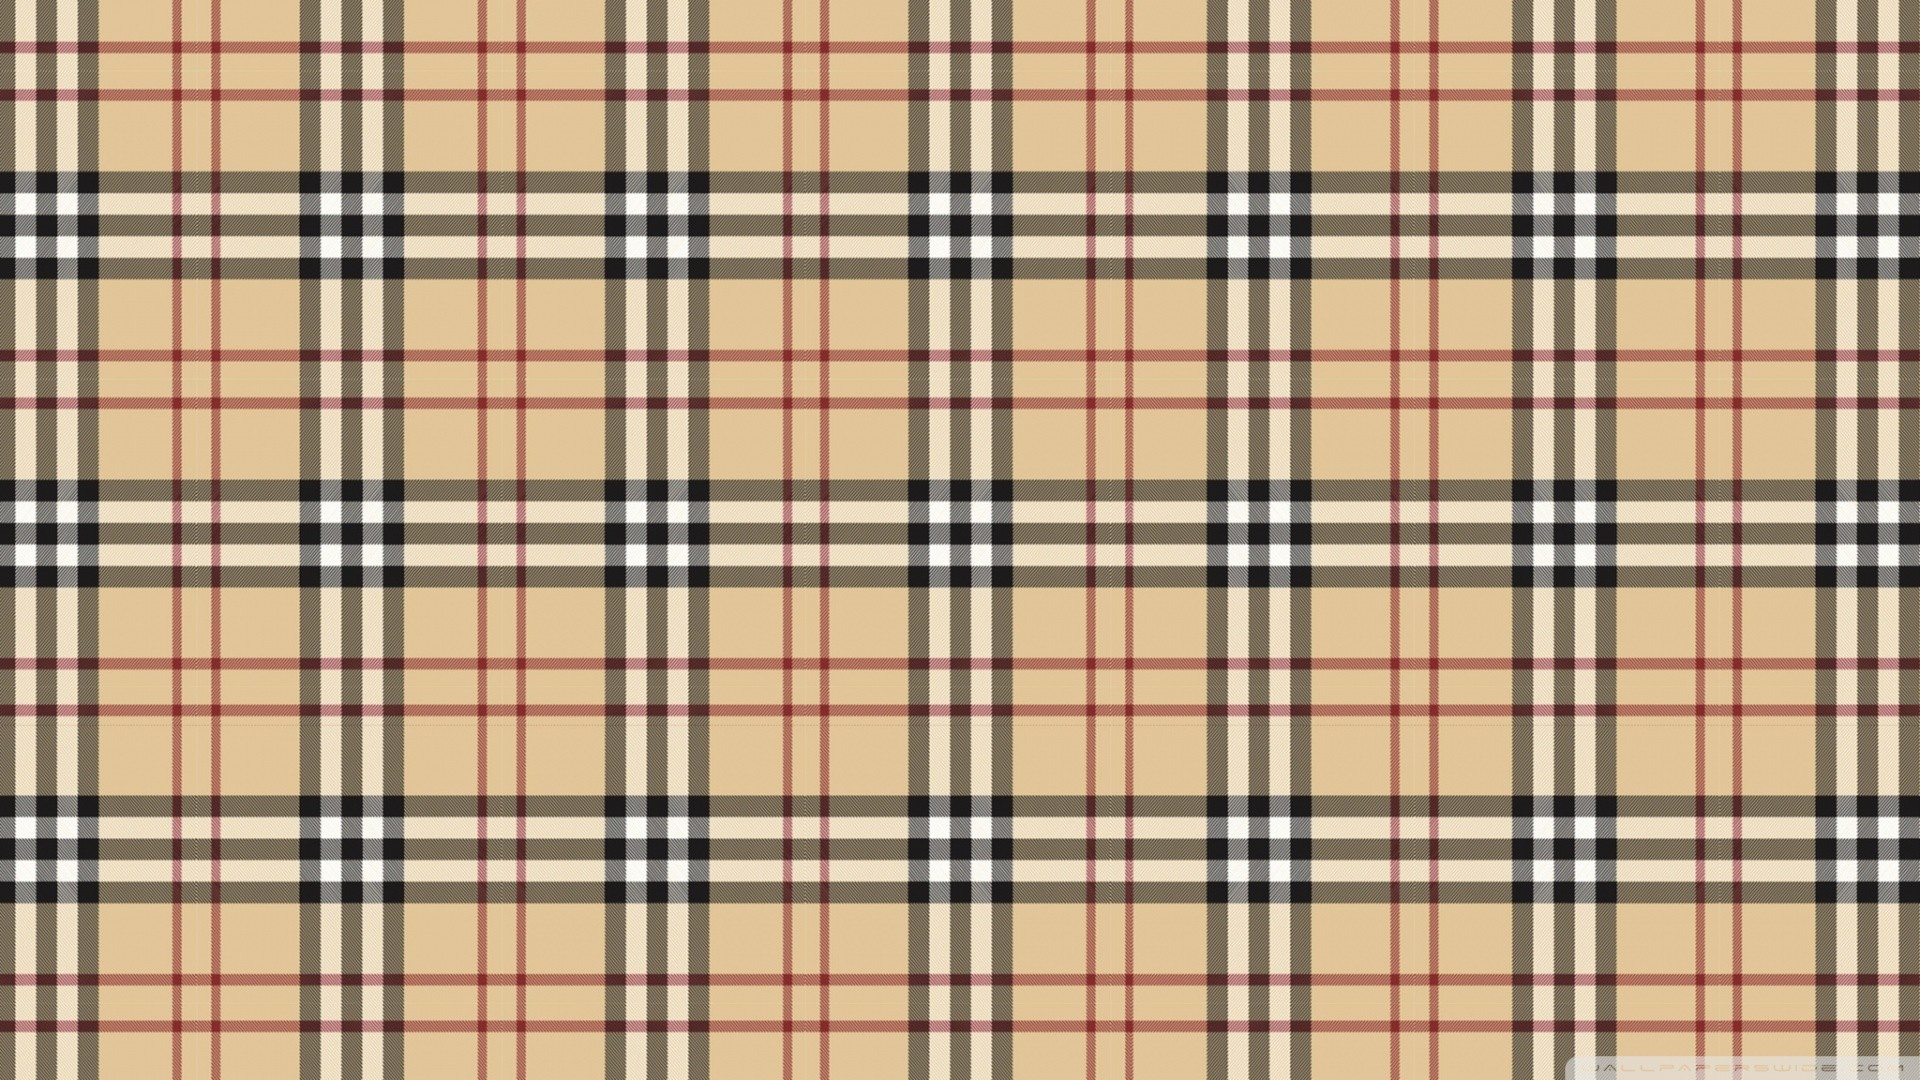 Burberry Wallpaper Iphone X Burberry Wallpapers 48 Images